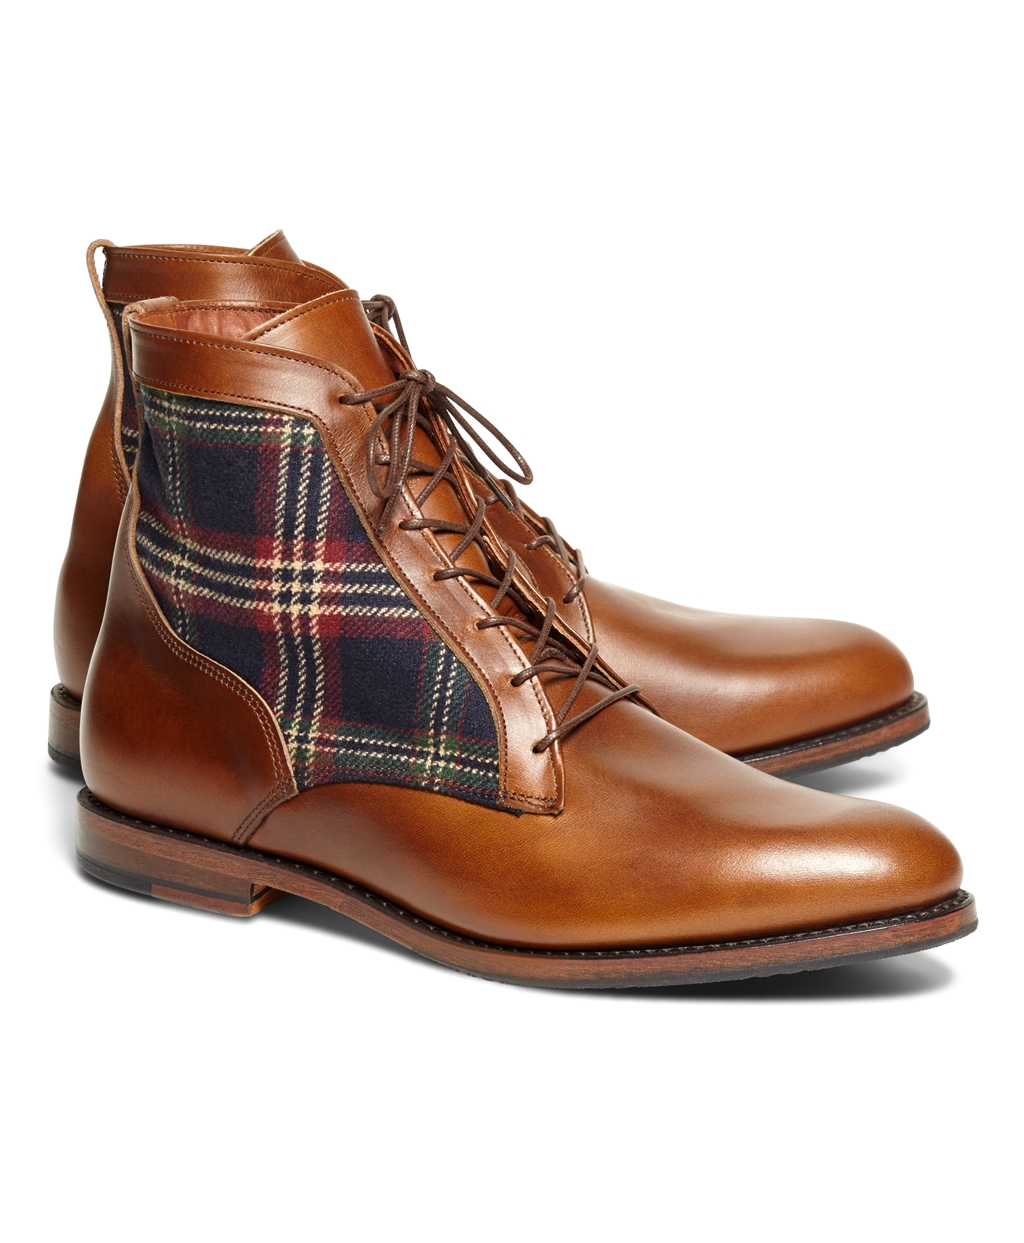 Brooks Brothers Men's Leather and Signature Tartan Boots